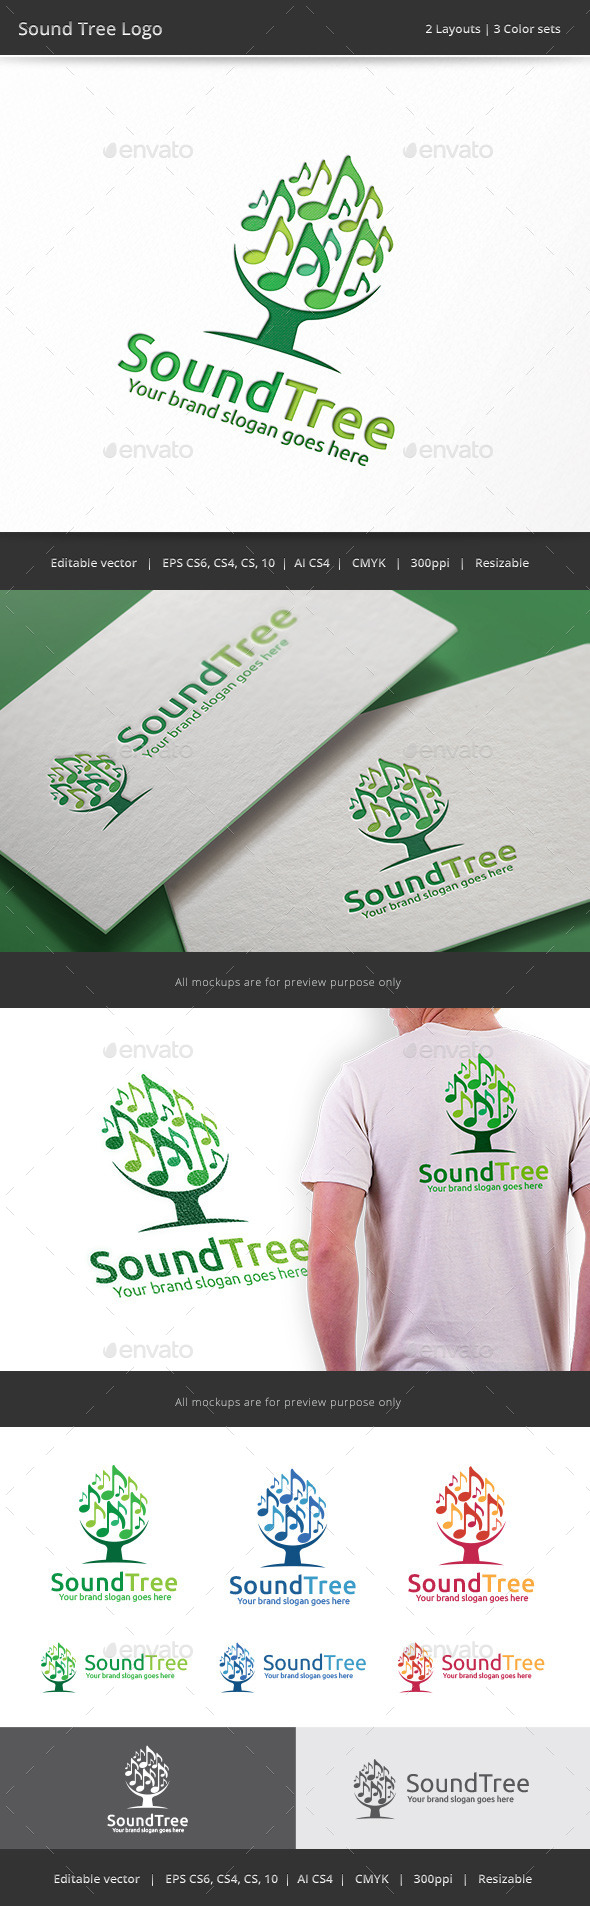 Sound Tree Logo - Vector Abstract